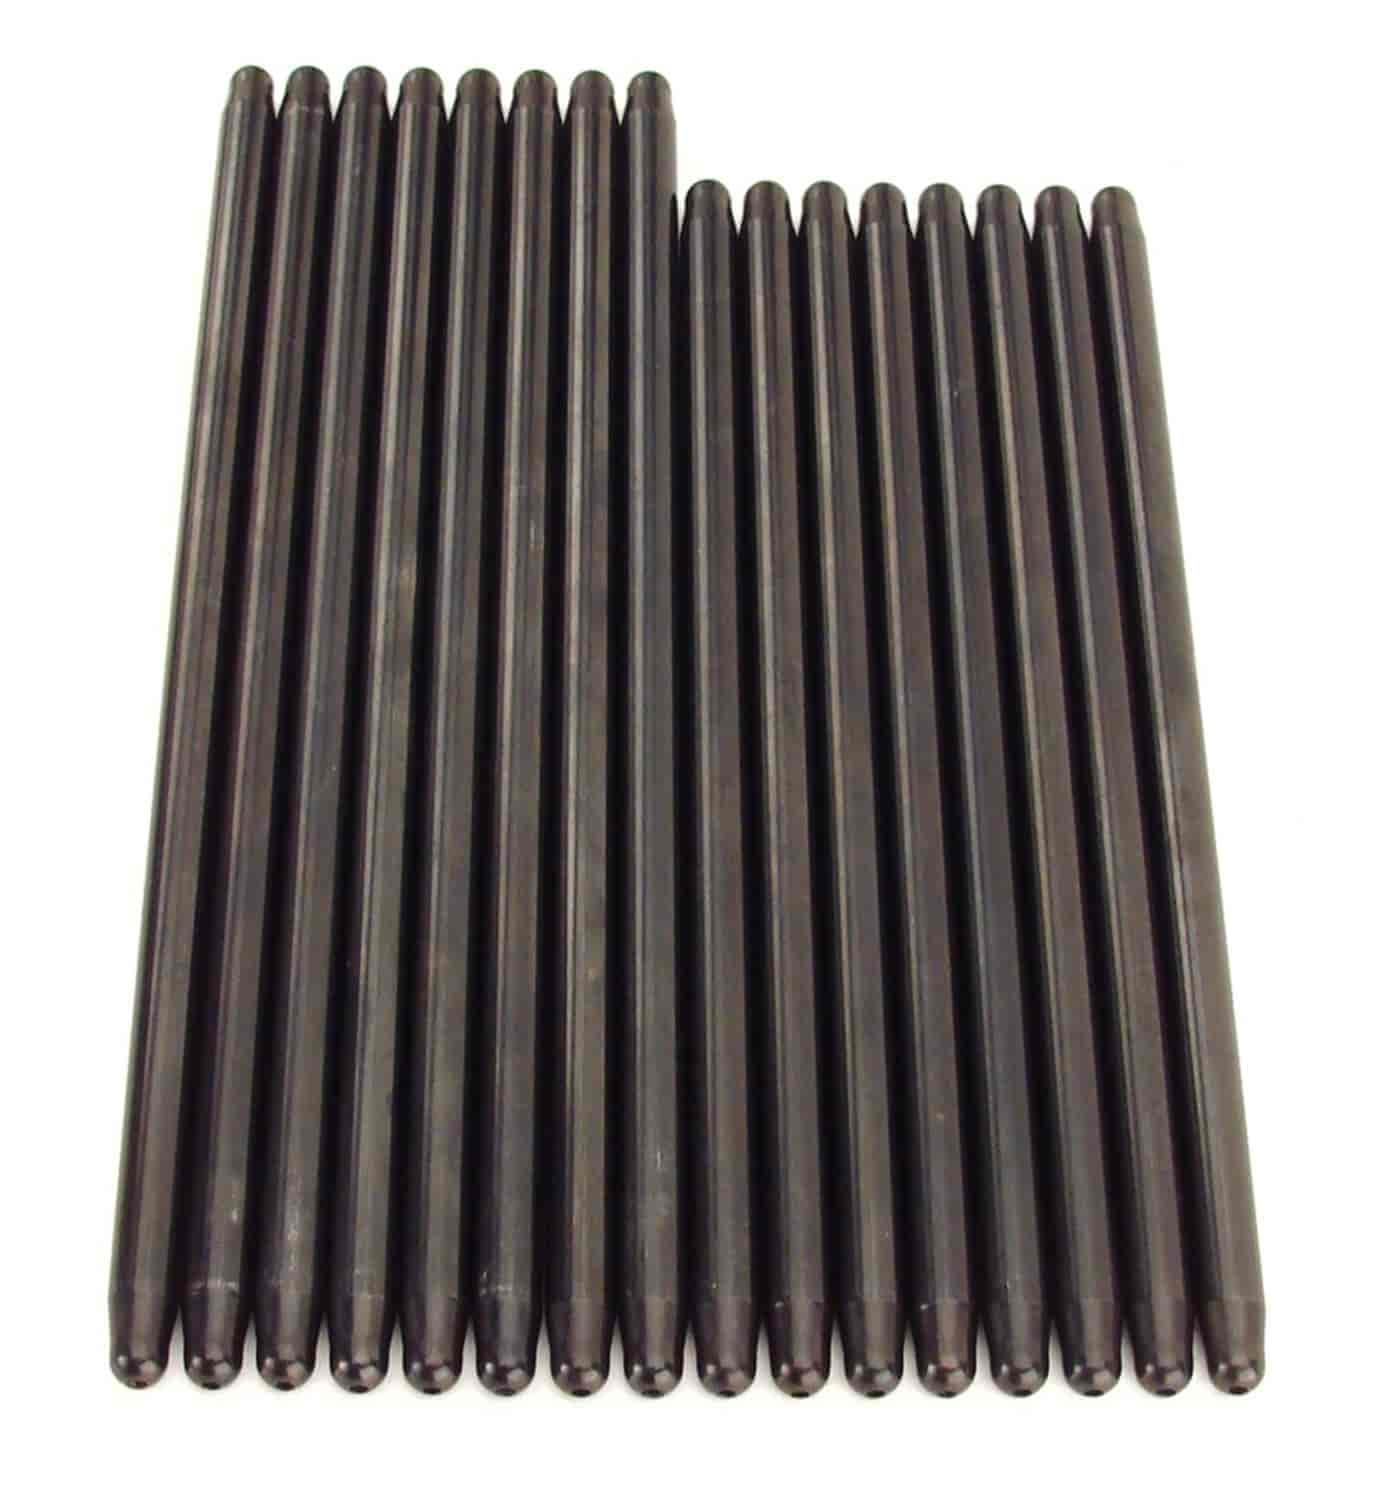 COMP Cams 7952-16 - Comp Cams Hi-Tech Pushrods